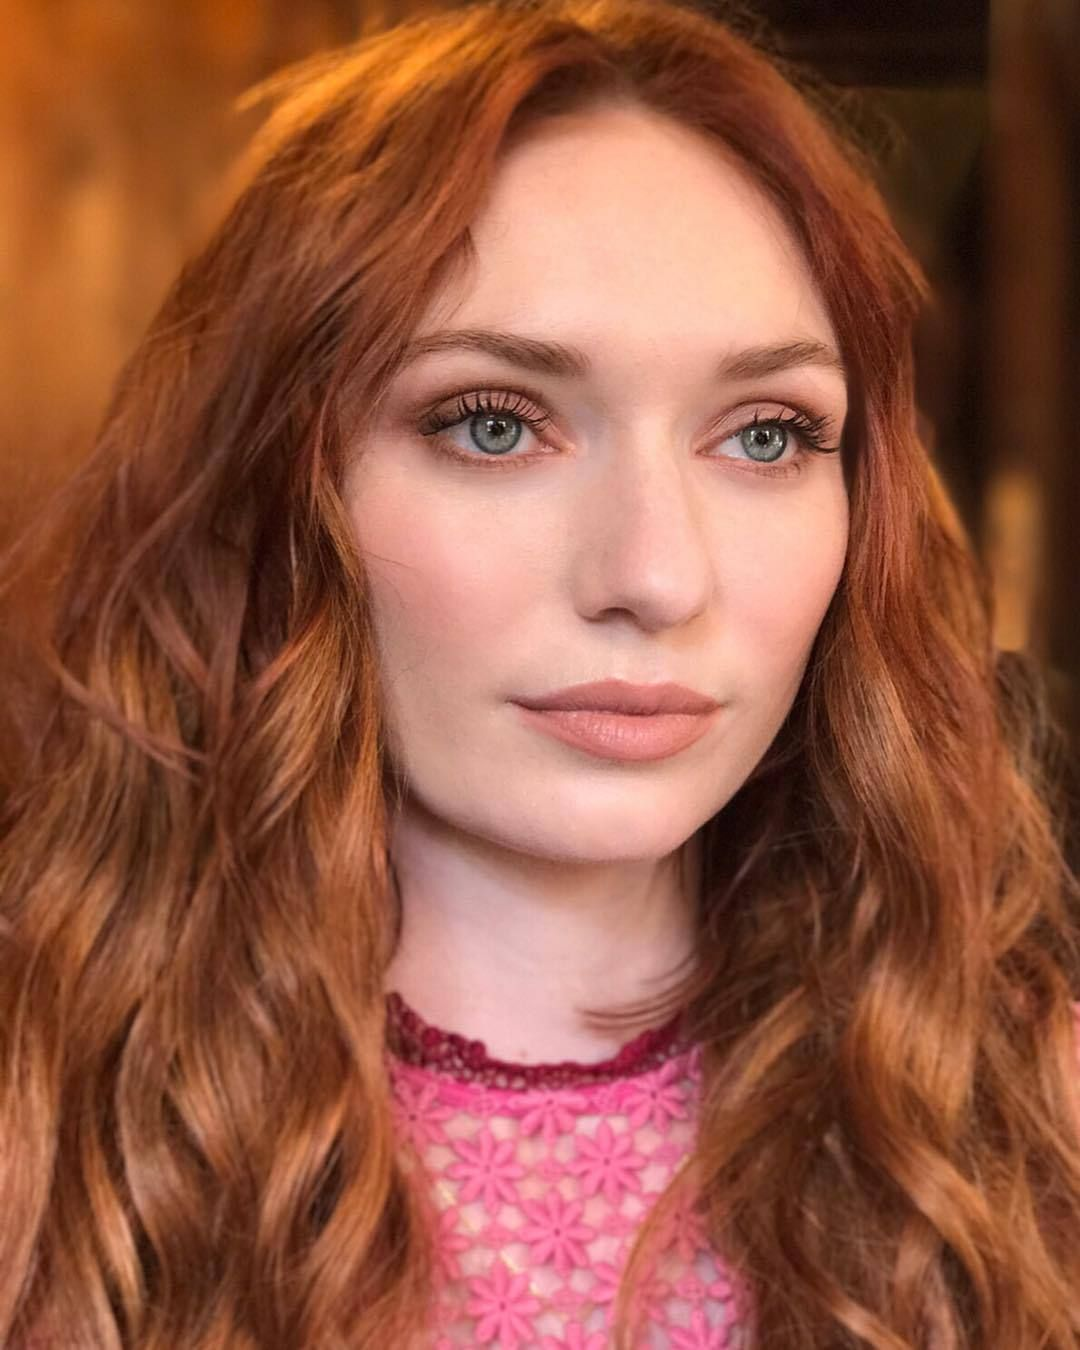 Eleanor Tomlinson nude (12 foto and video), Topless, Paparazzi, Selfie, braless 2019